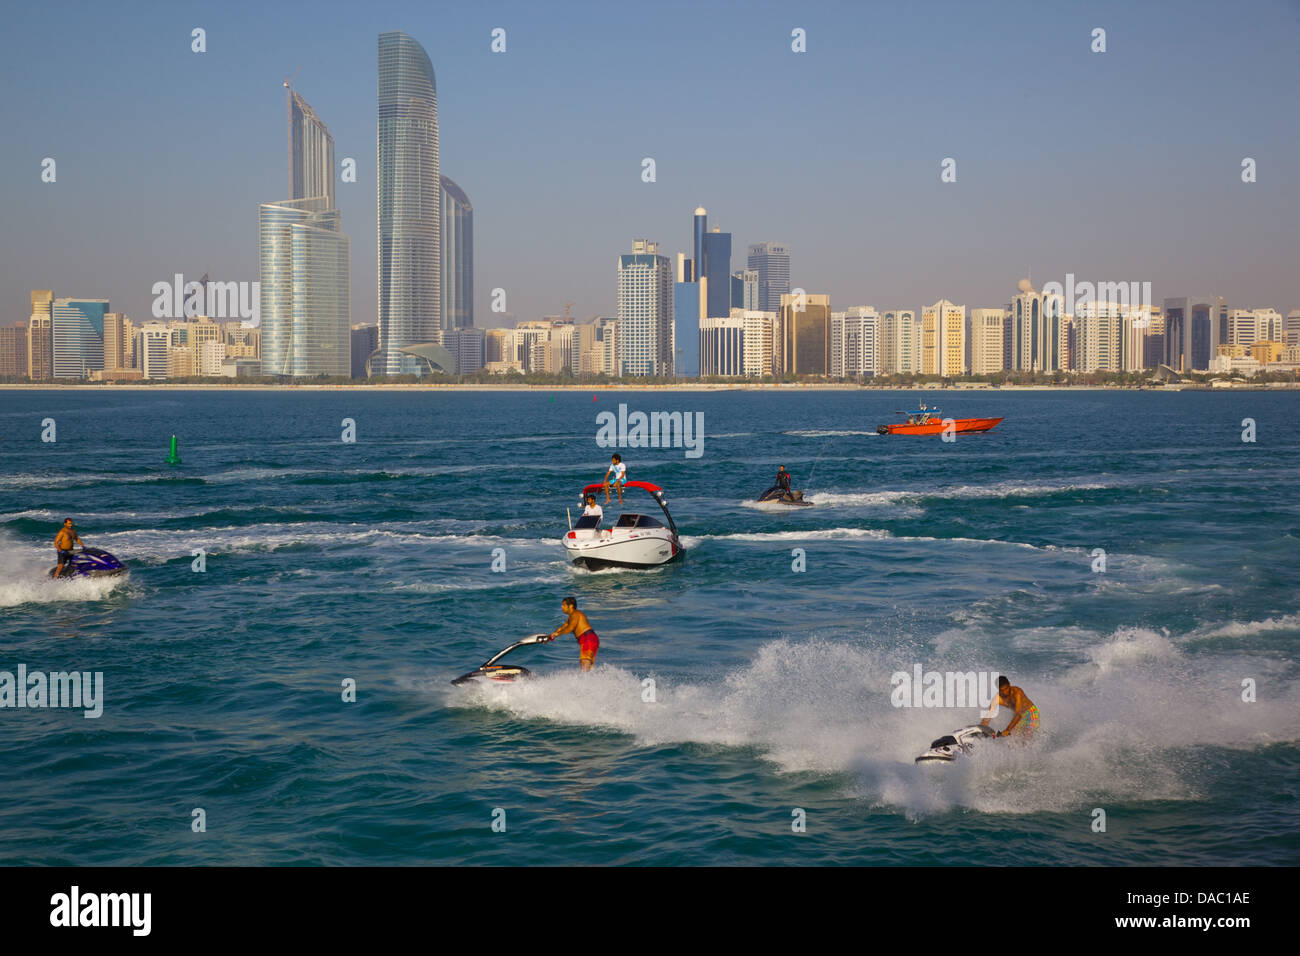 View of city from Marina and Jet ski Water sport, Abu Dhabi, United Arab Emirates, Middle East - Stock Image